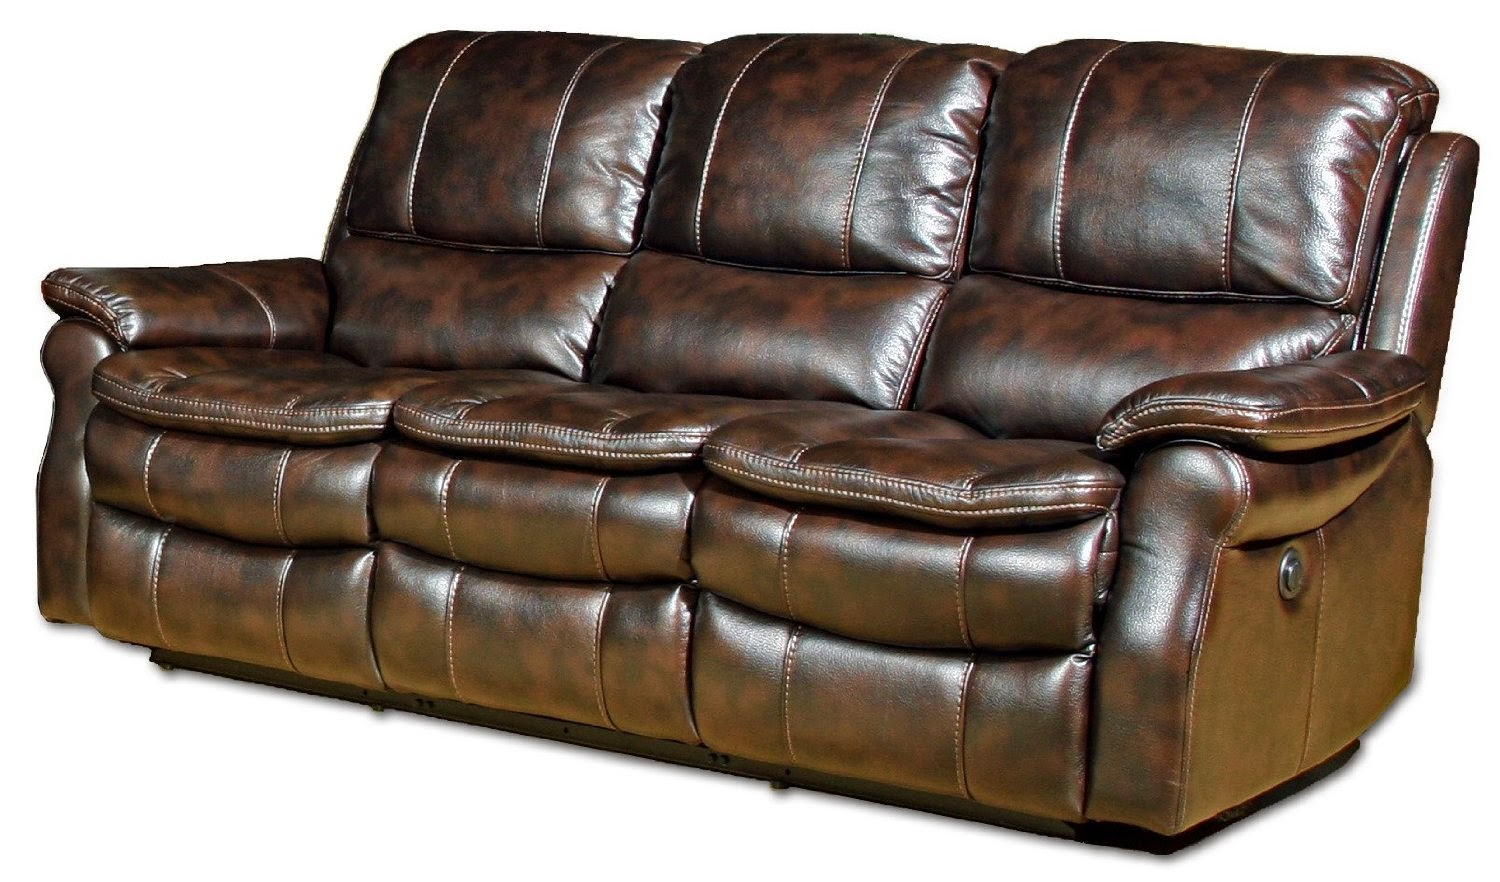 Reclining sofa loveseat and chair sets seth genuine leather power reclining sofa Leather reclining sofa loveseat